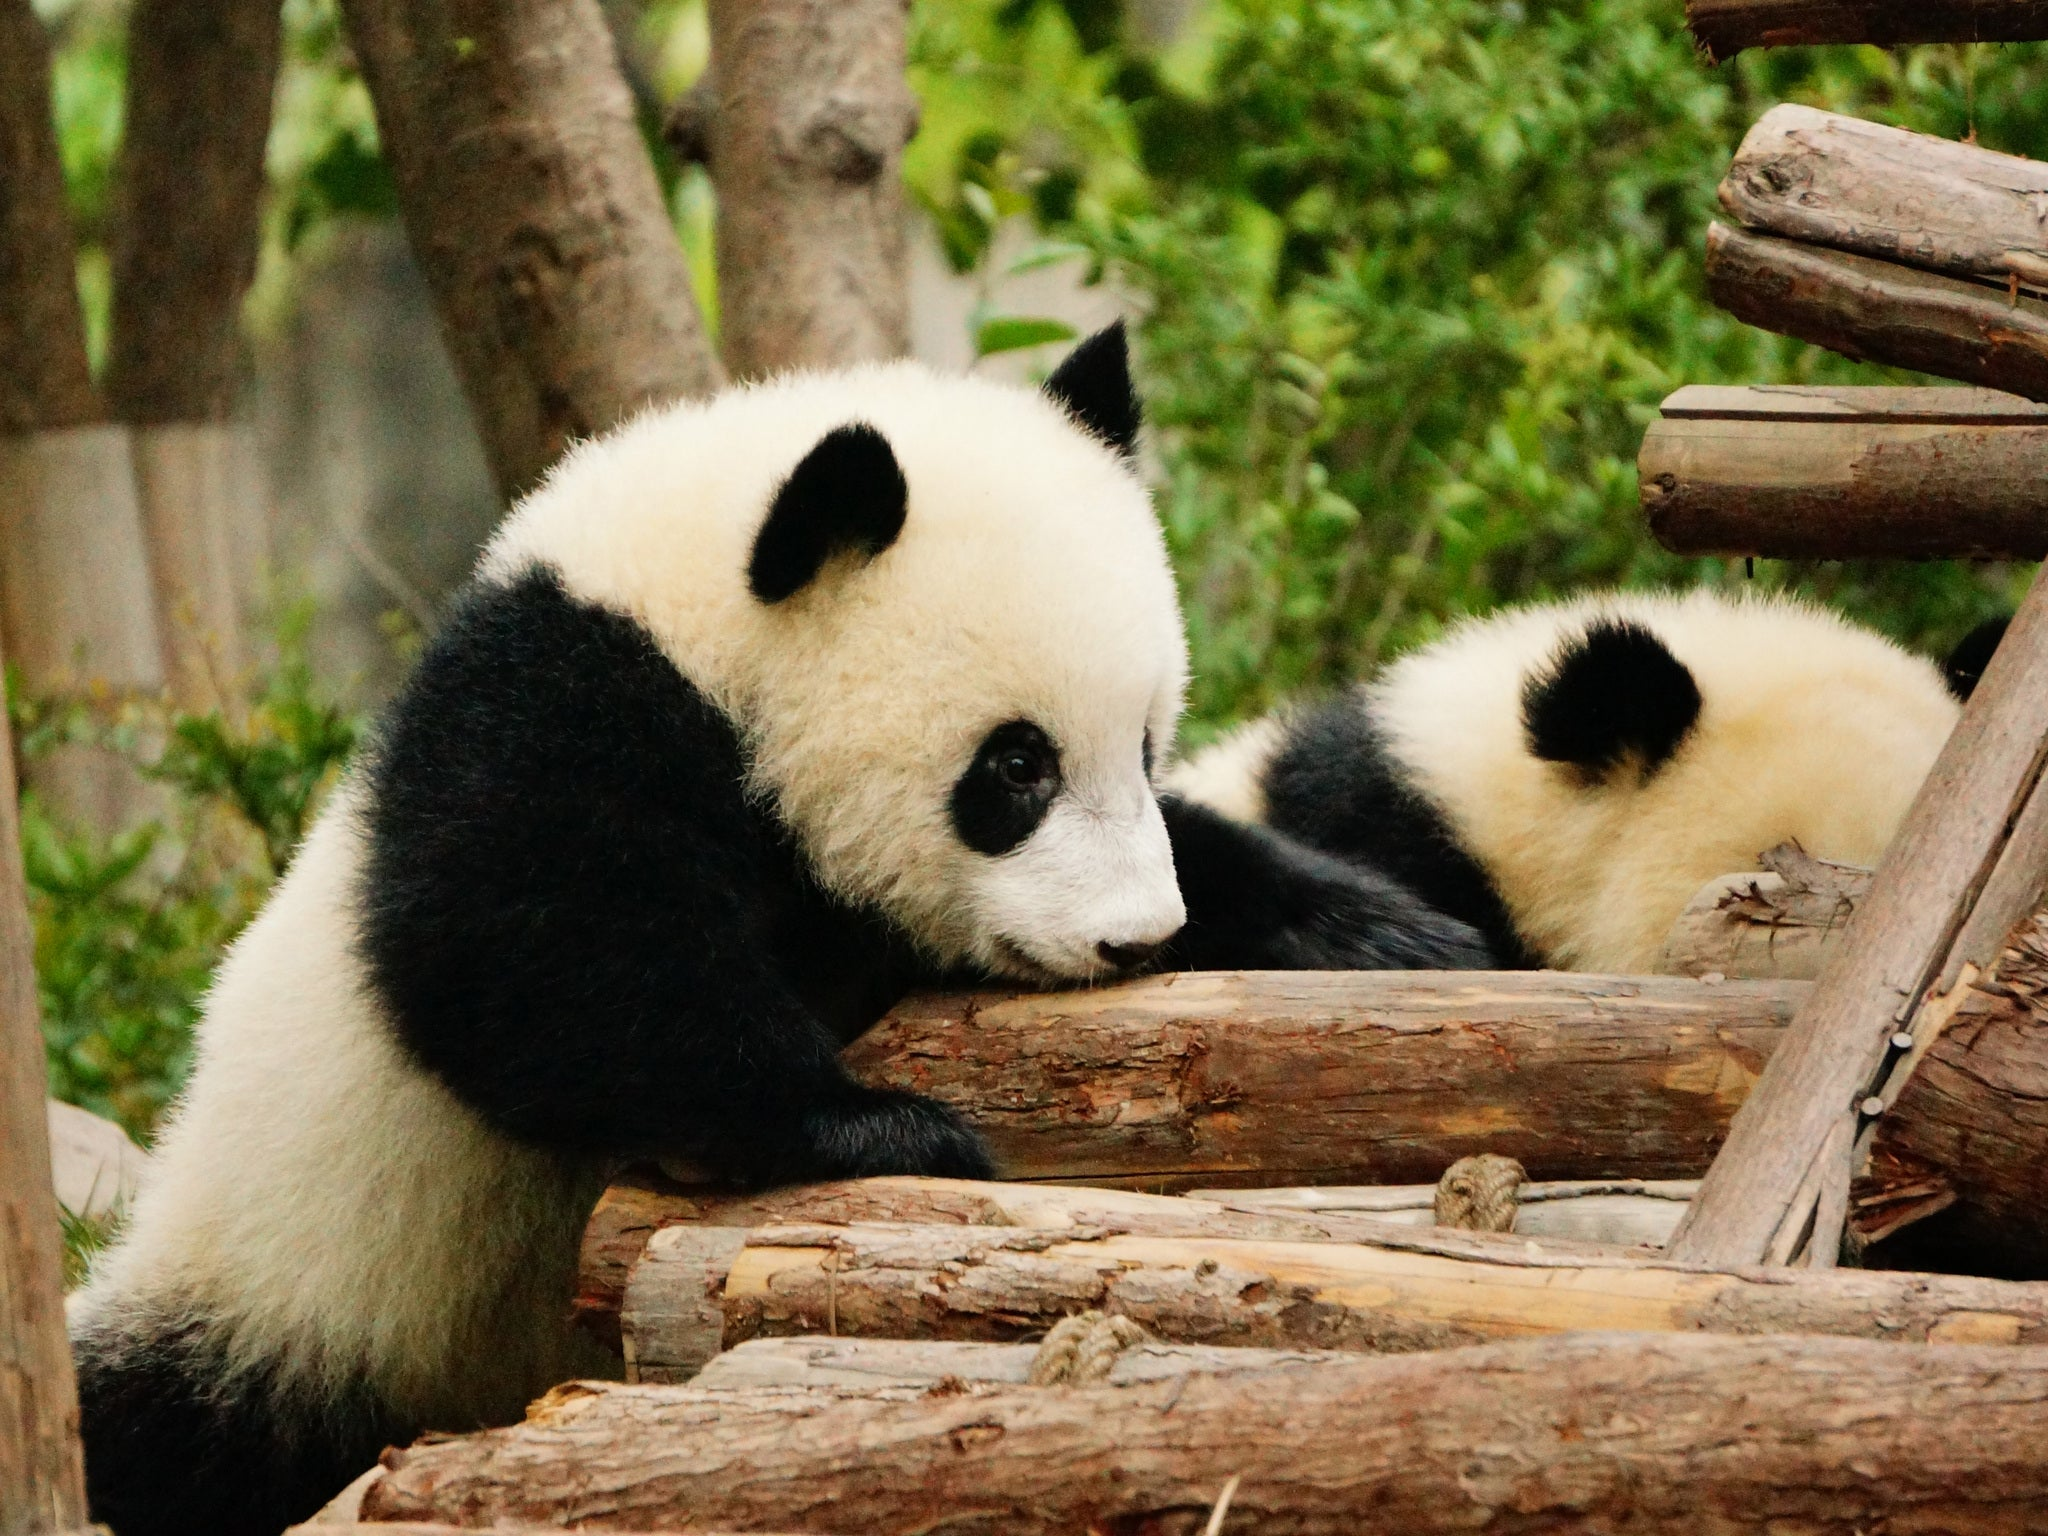 Scientists Say They Have Decoded Panda Language The